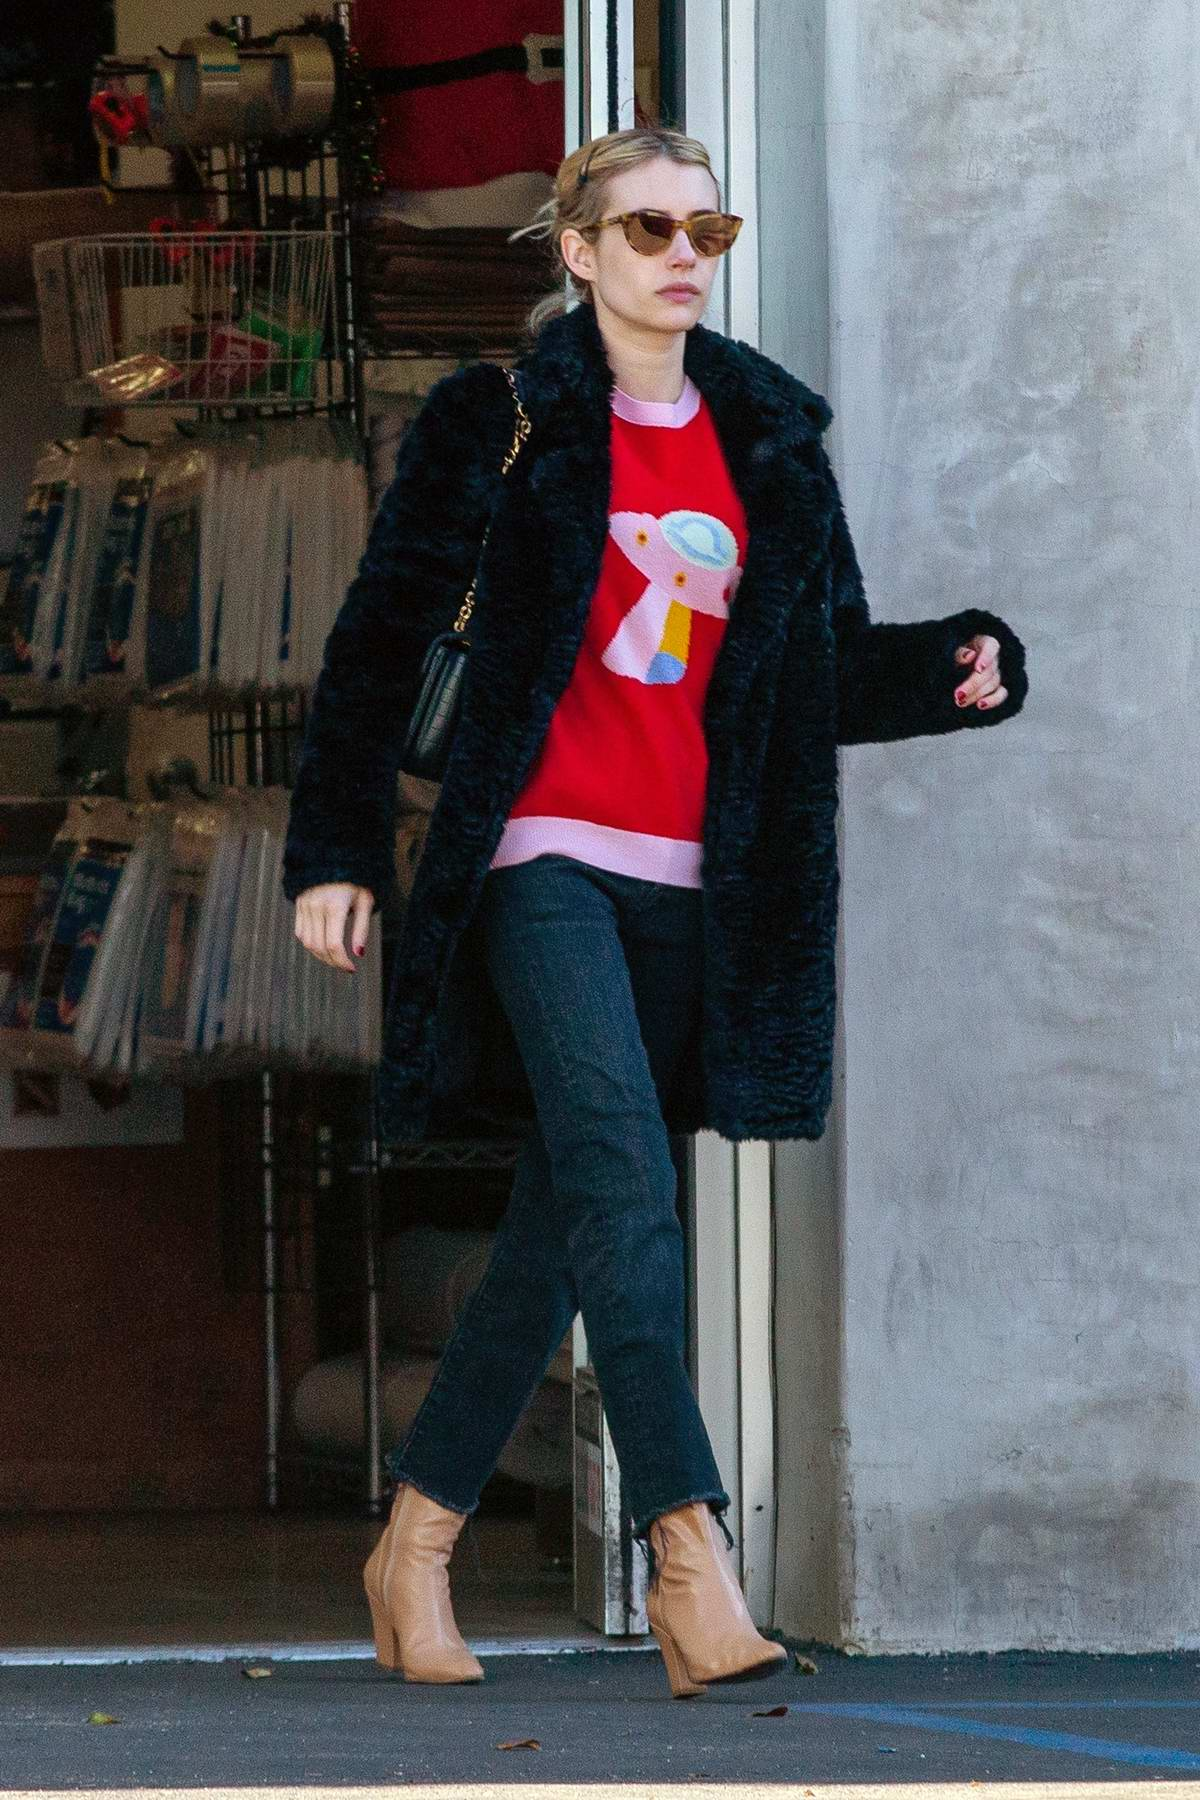 Emma Roberts stops at a store to ship some gifts on Christmas Eve while out running errands in Los Feliz, California